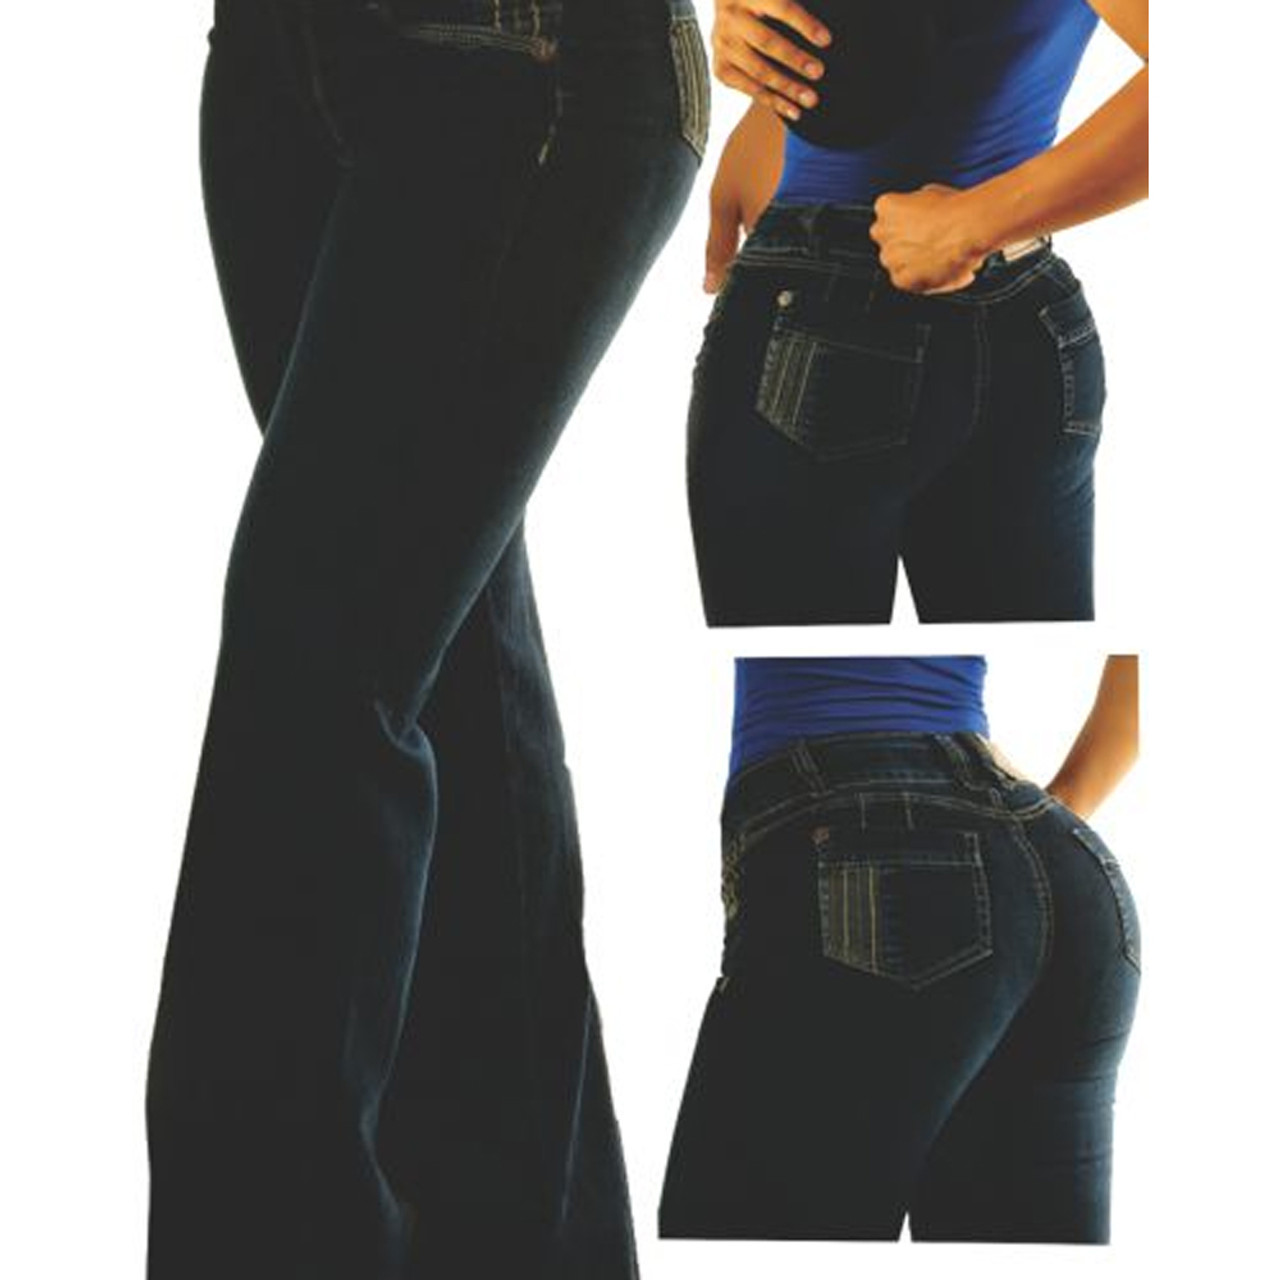 Aranza Women S Push Up Butt Lifting Jeans Colombian Pantalones Colombianos Levanta Cola Jean Mundo Latino